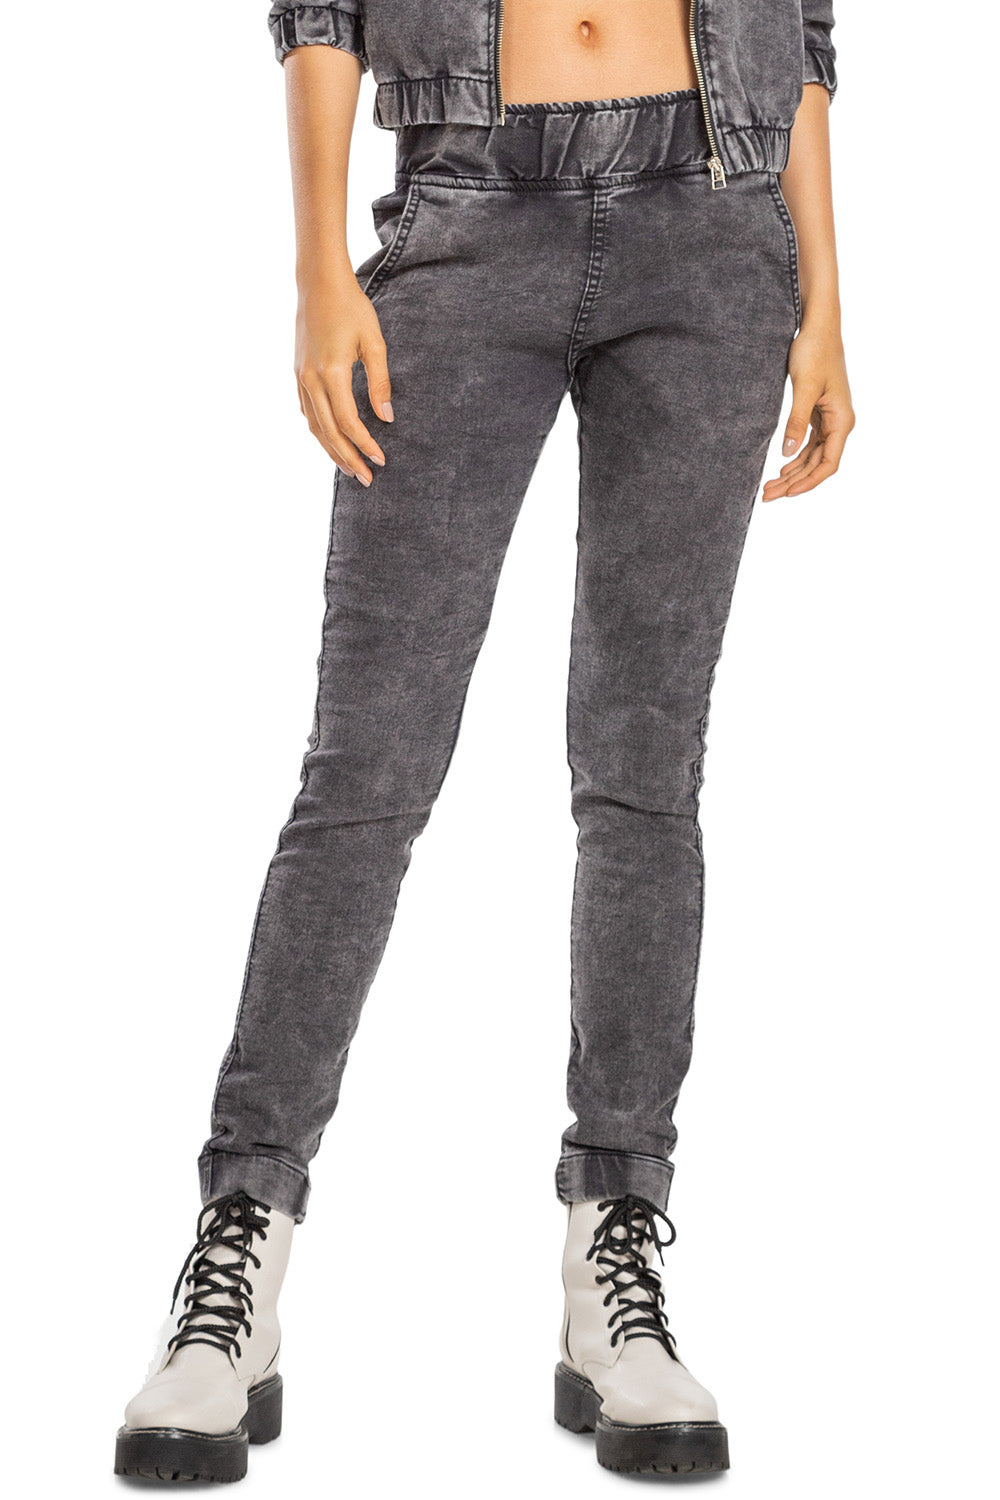 Indigo Denim Boyfriend Pants 1